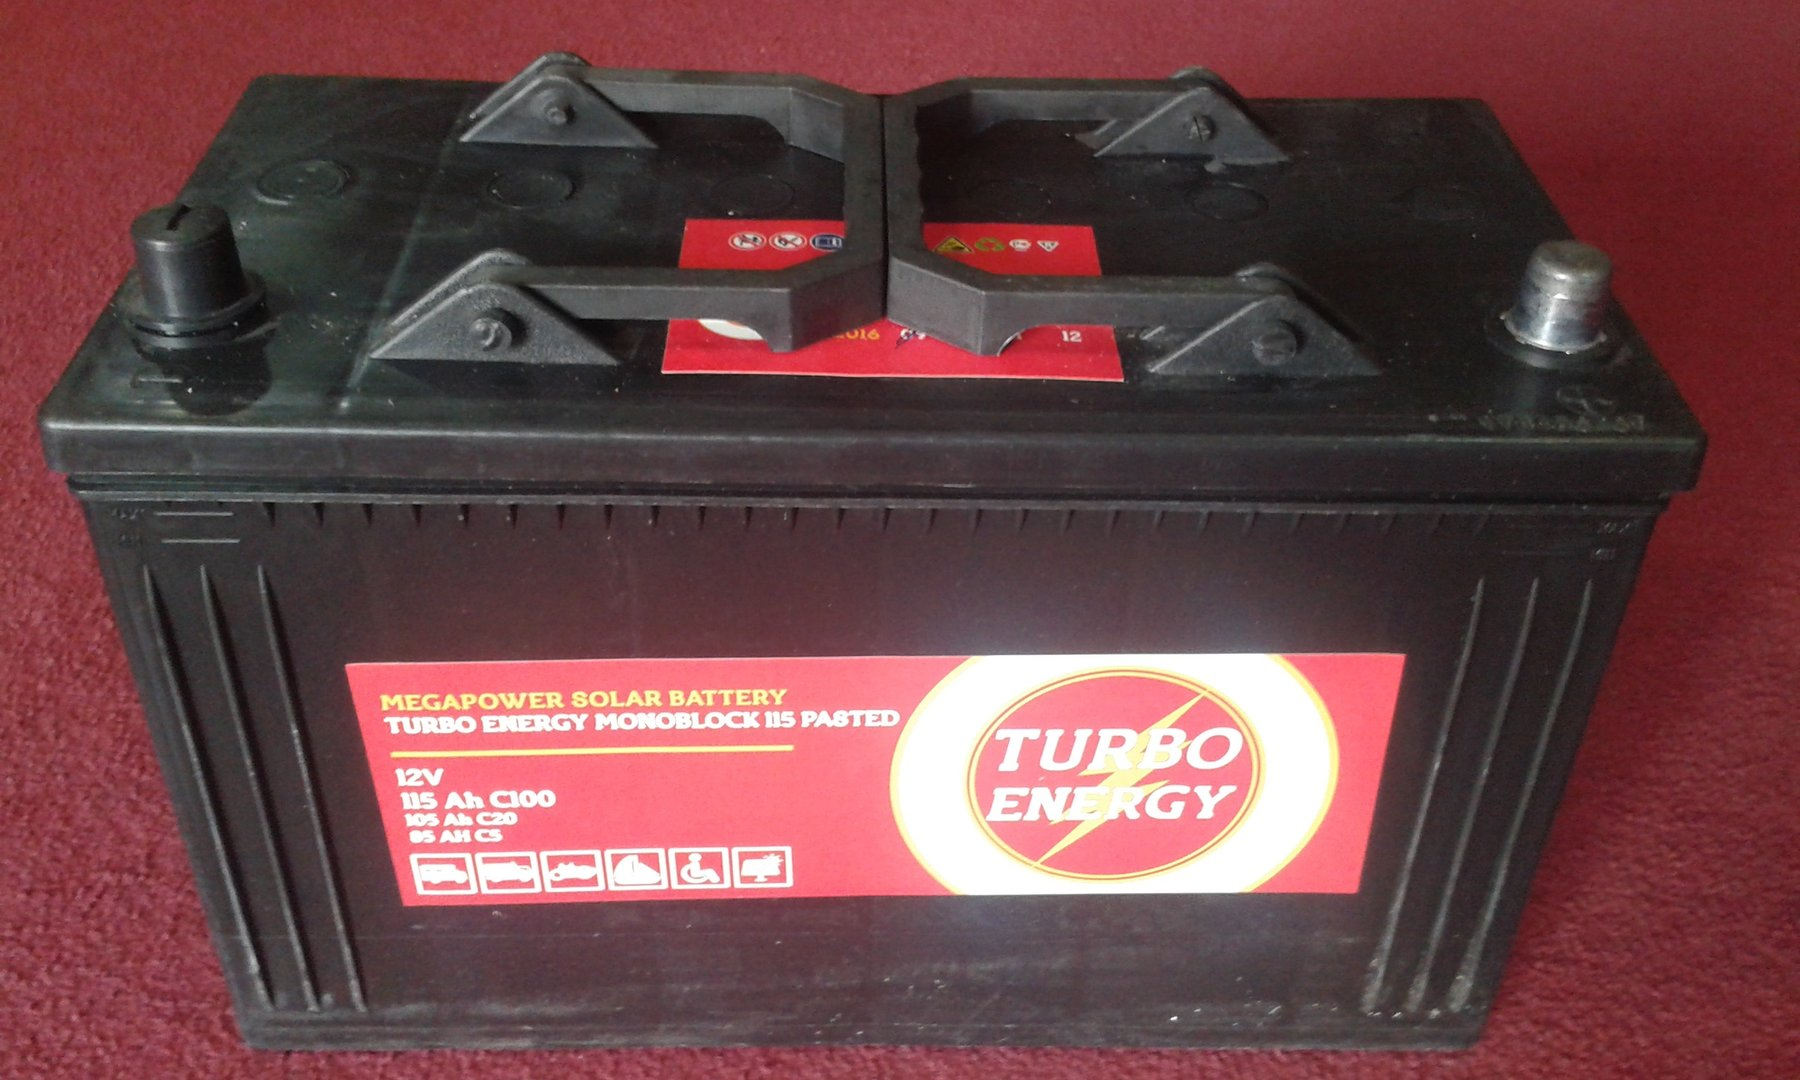 Monoblock Battery 115Ah C100 12V Turbo Energy